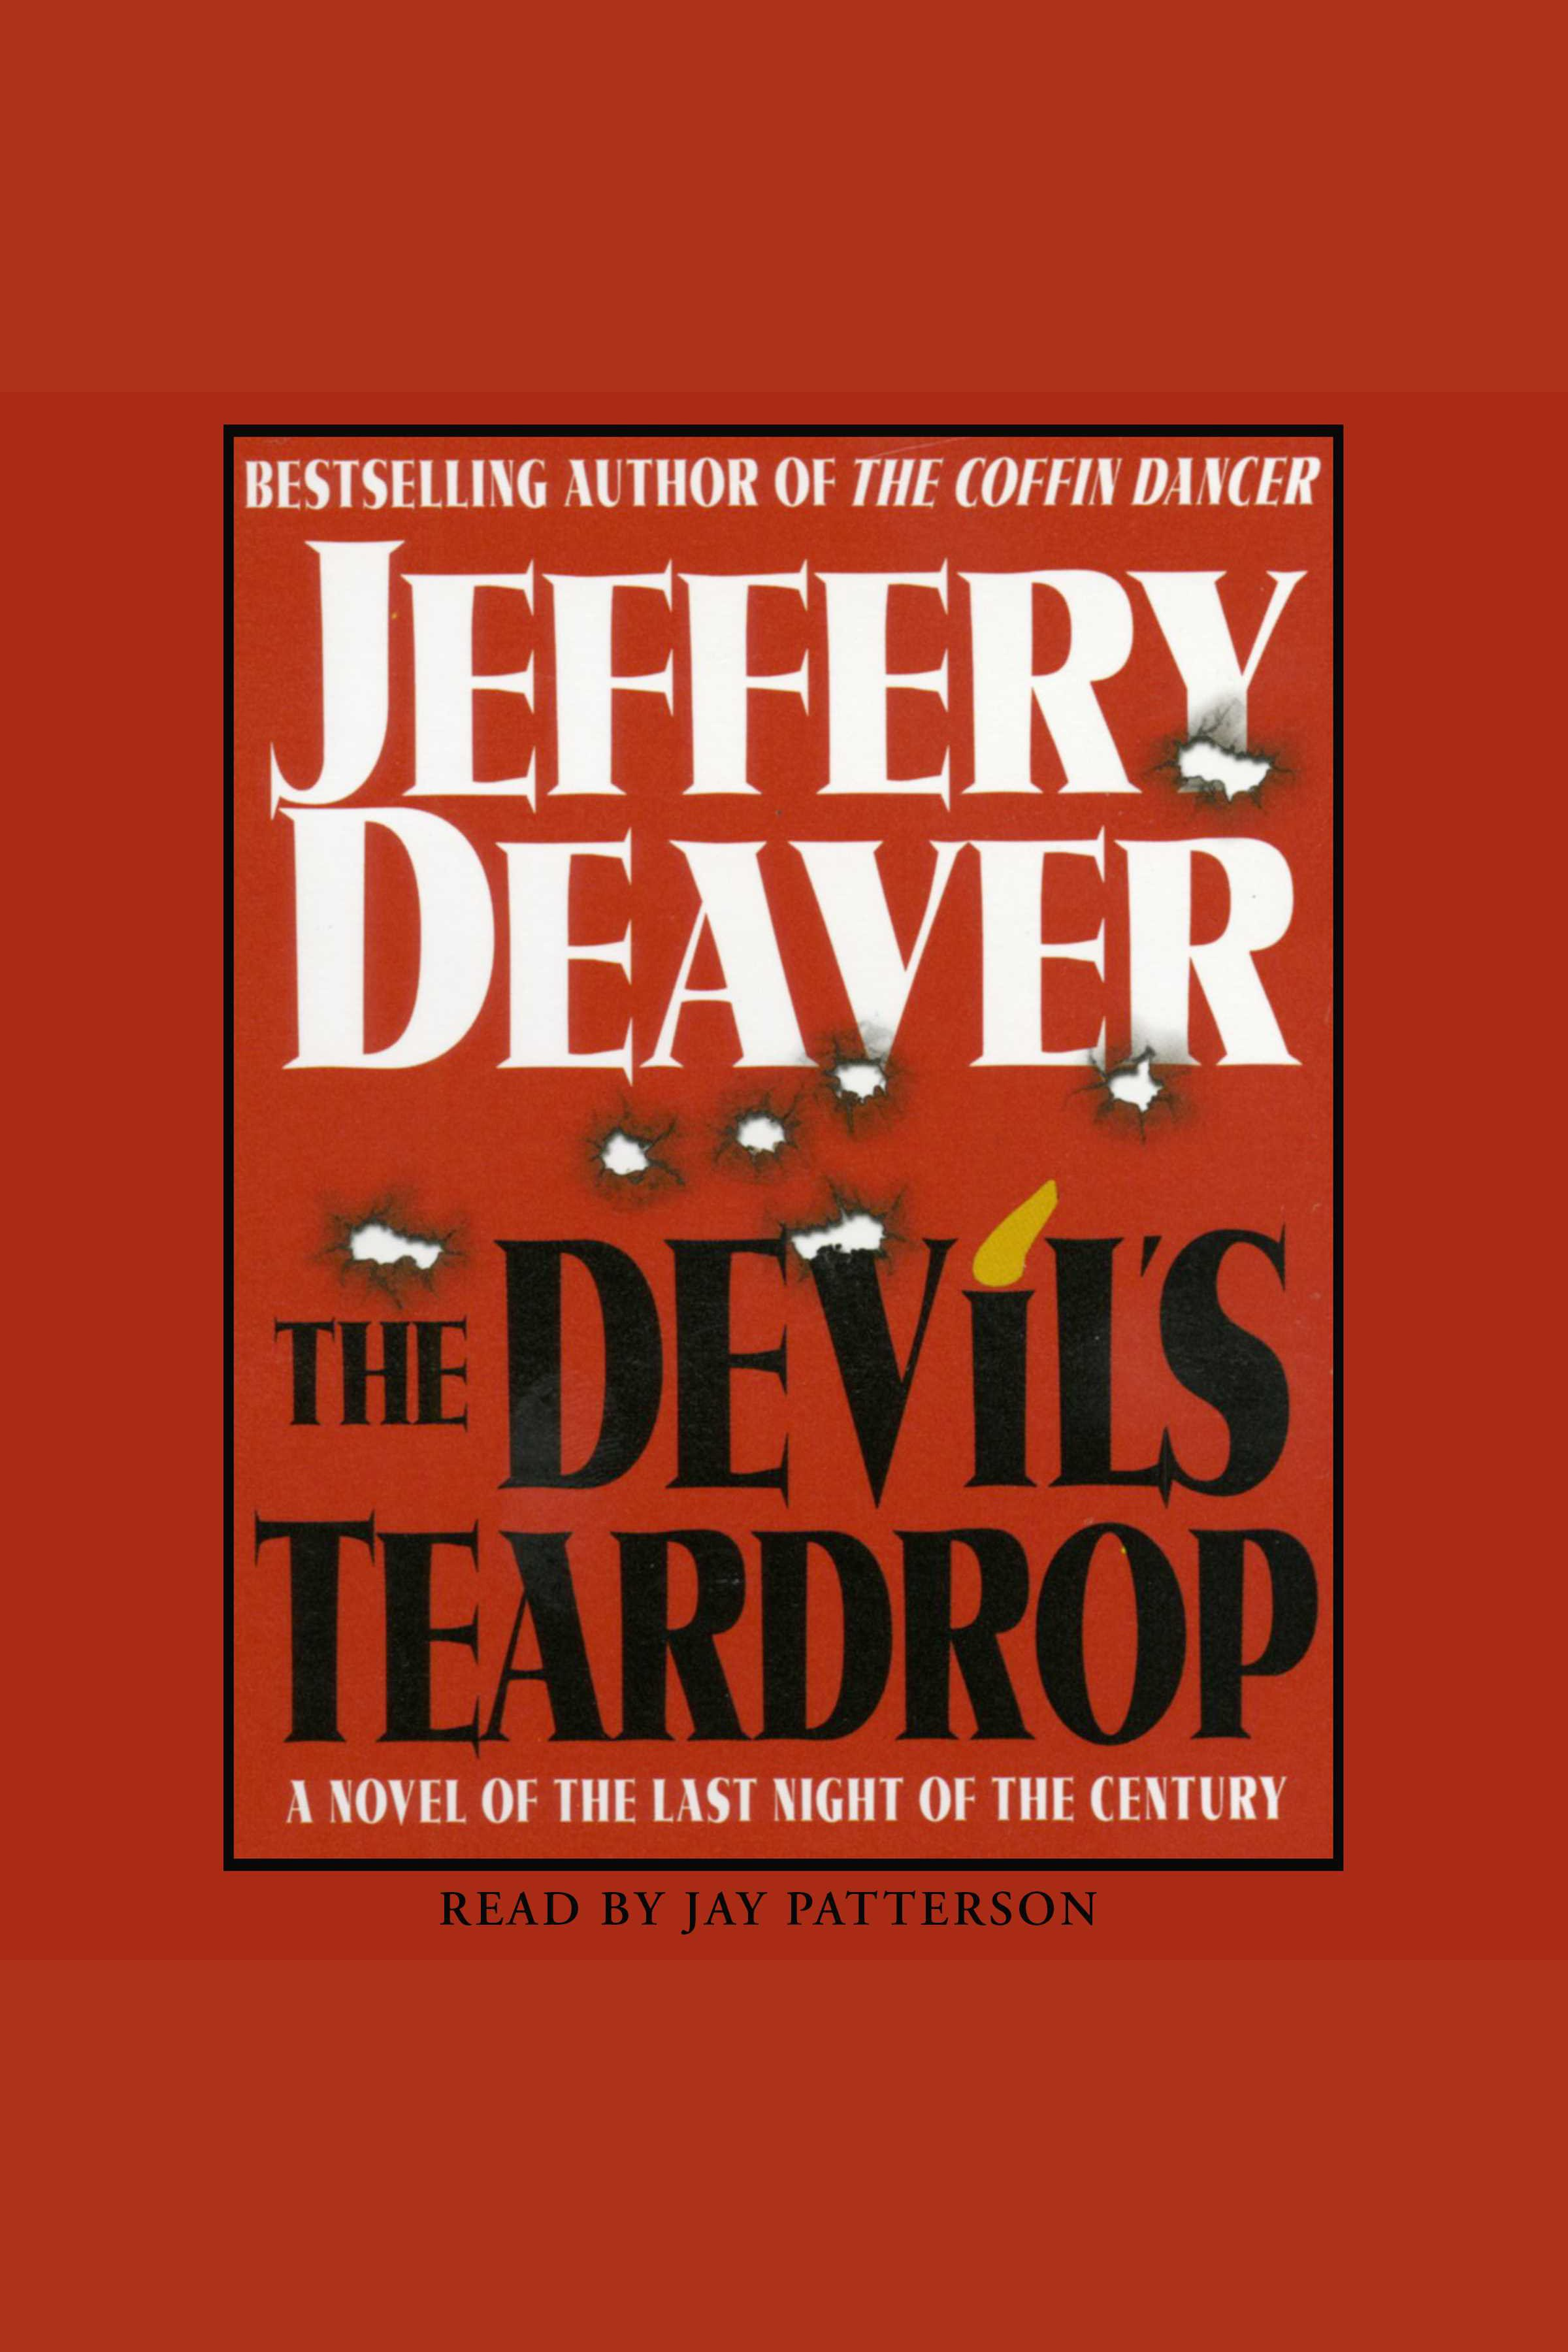 Devil's Teardrop A Novel of the Last Night of the Century cover image